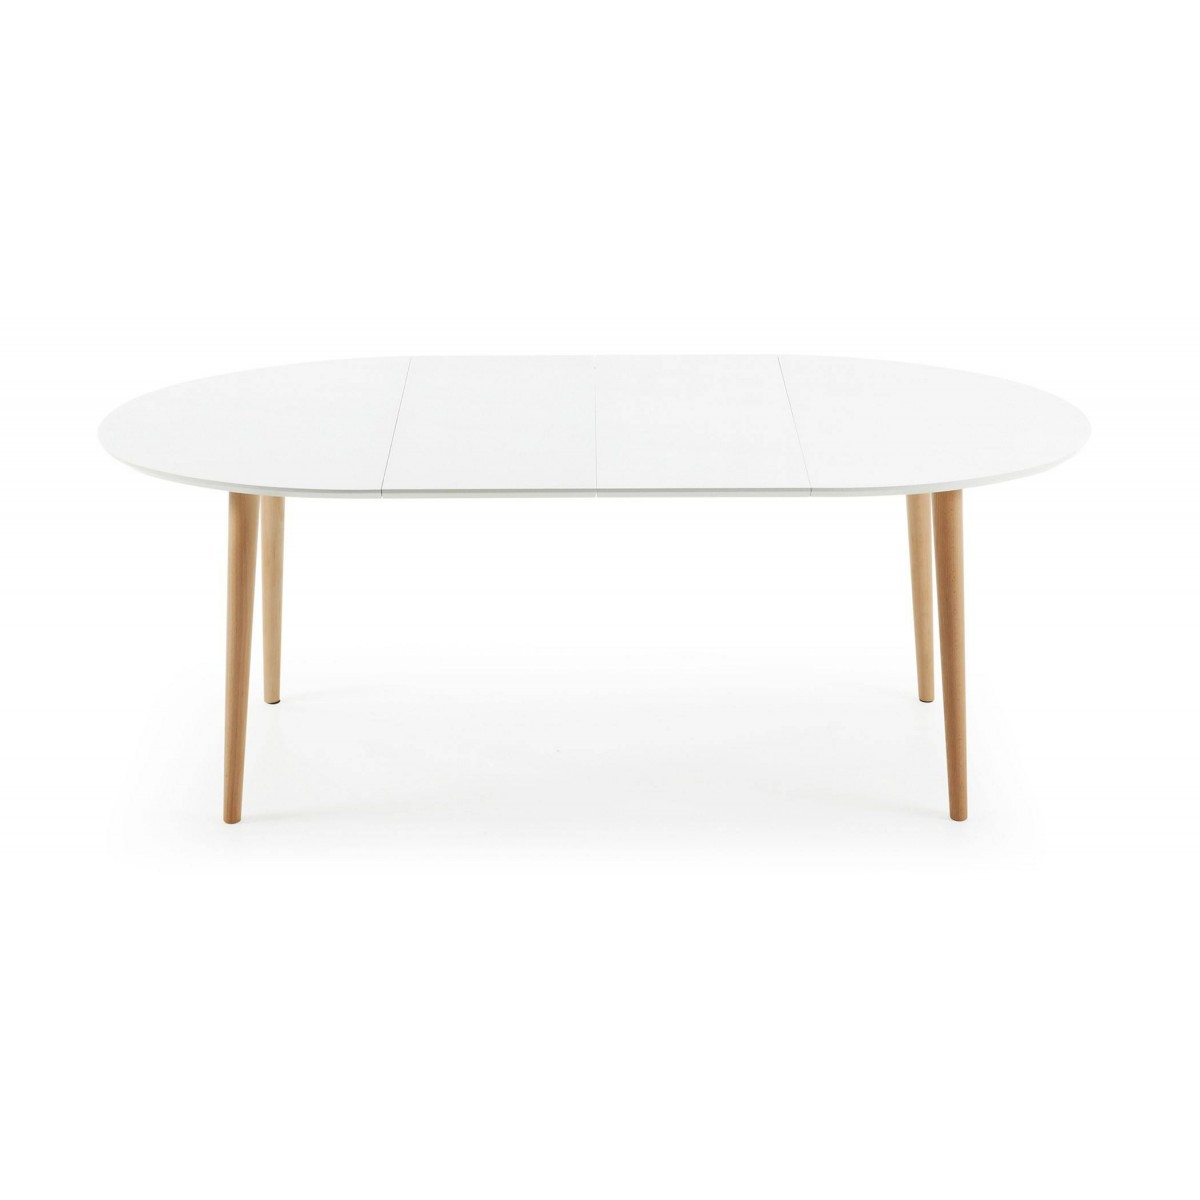 Mesa extensible madera lacada blanca scandy for Mesa extensible de madera